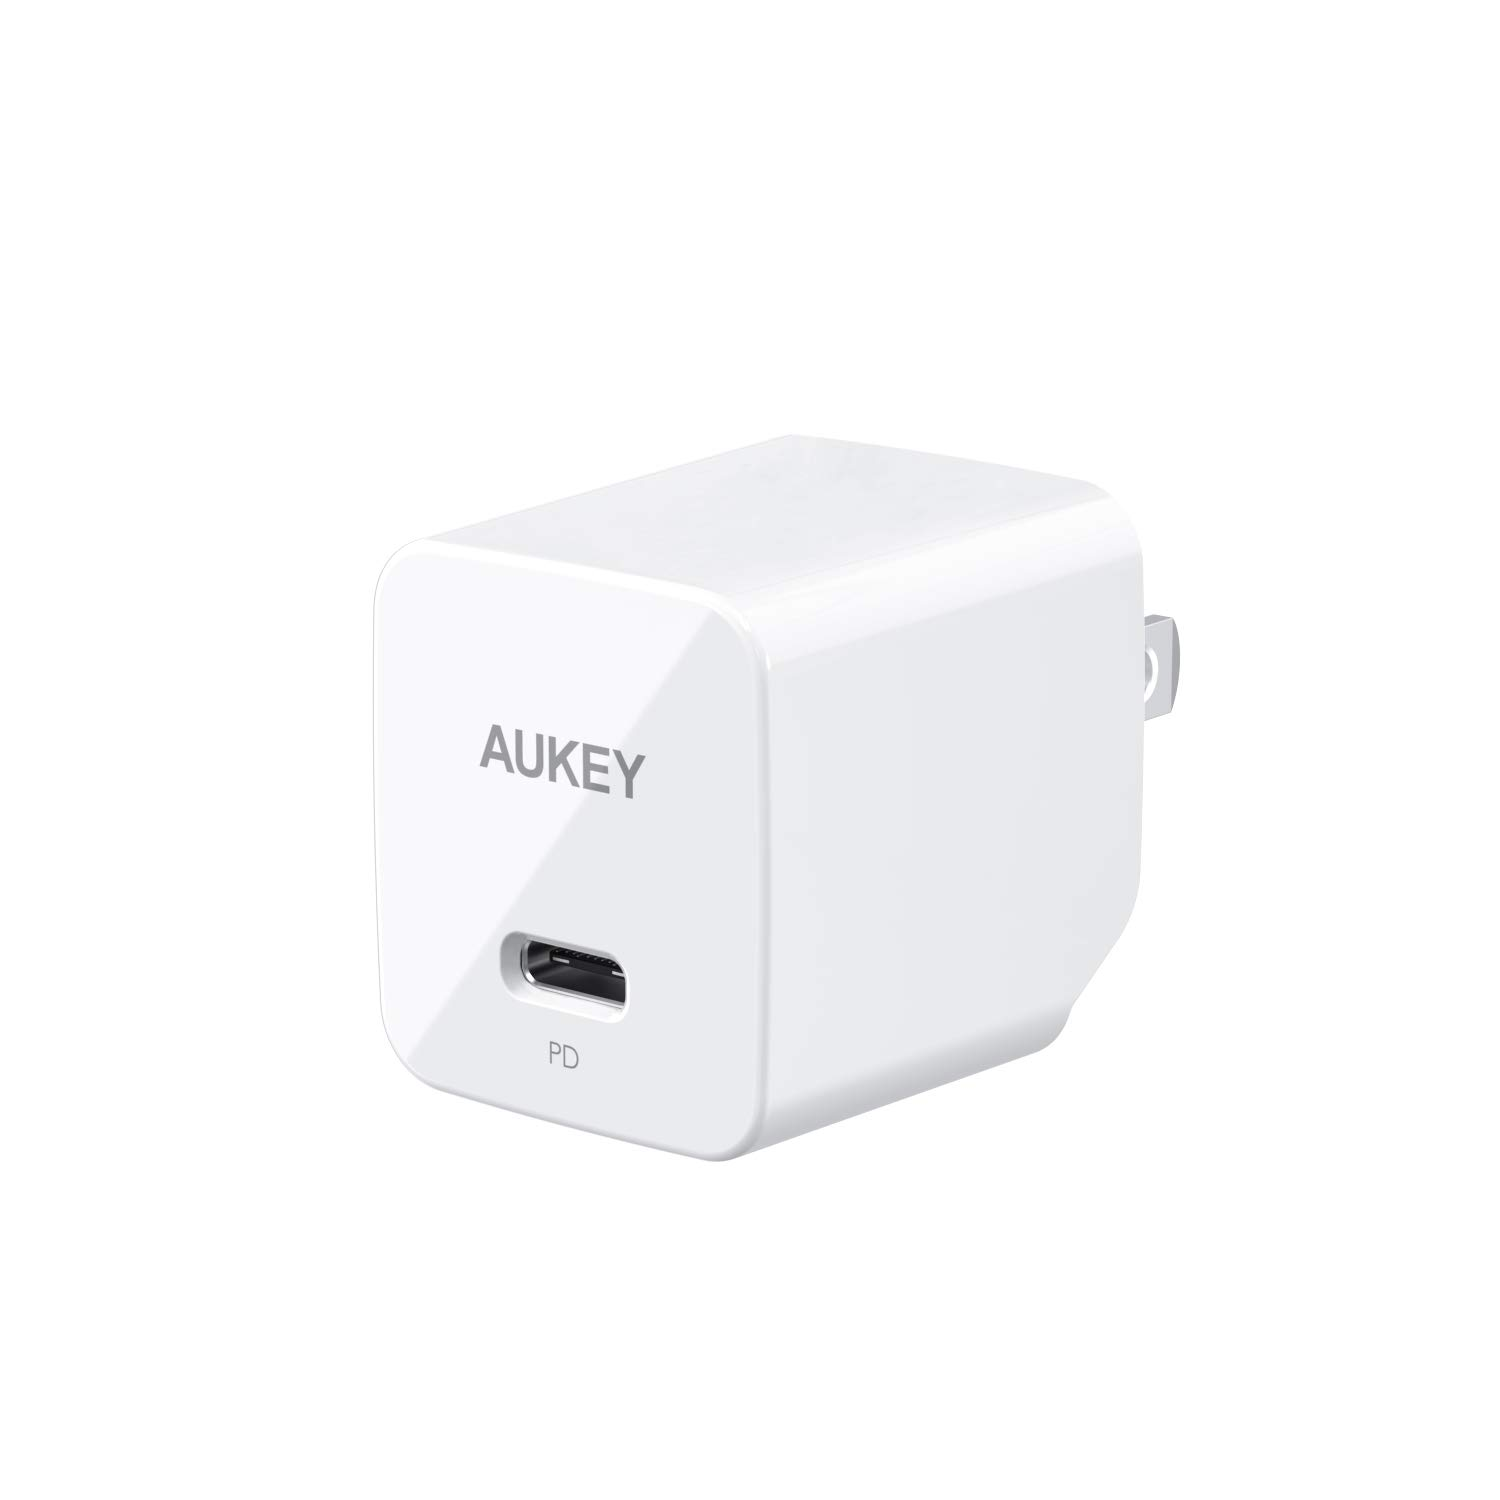 AUKEY USB C Charger with 18W Power Delivery 3.0, Ultra-Compact USB C Wall Charger, Compatible iPhone Xs/XS Max/XR, Google Pixel 2/2 XL, Samsung Galaxy S9+ / Note8 and More-White